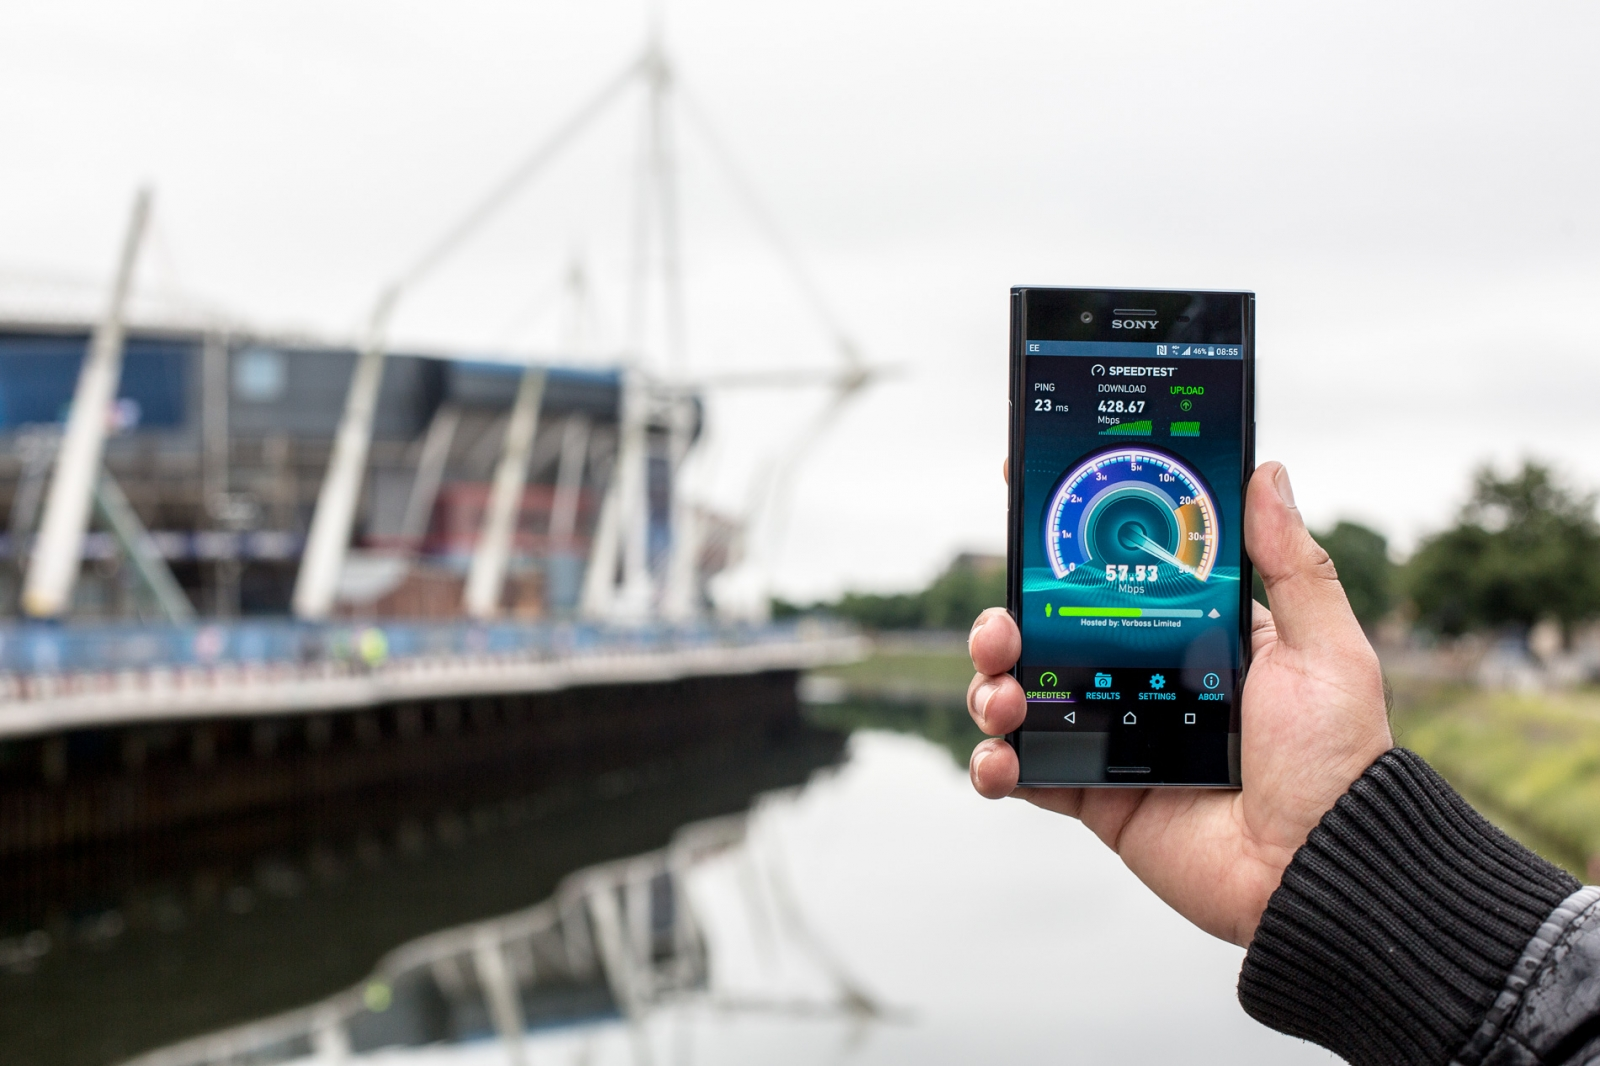 EE achieves 750Mbps download speeds in live Gigabit LTE demo